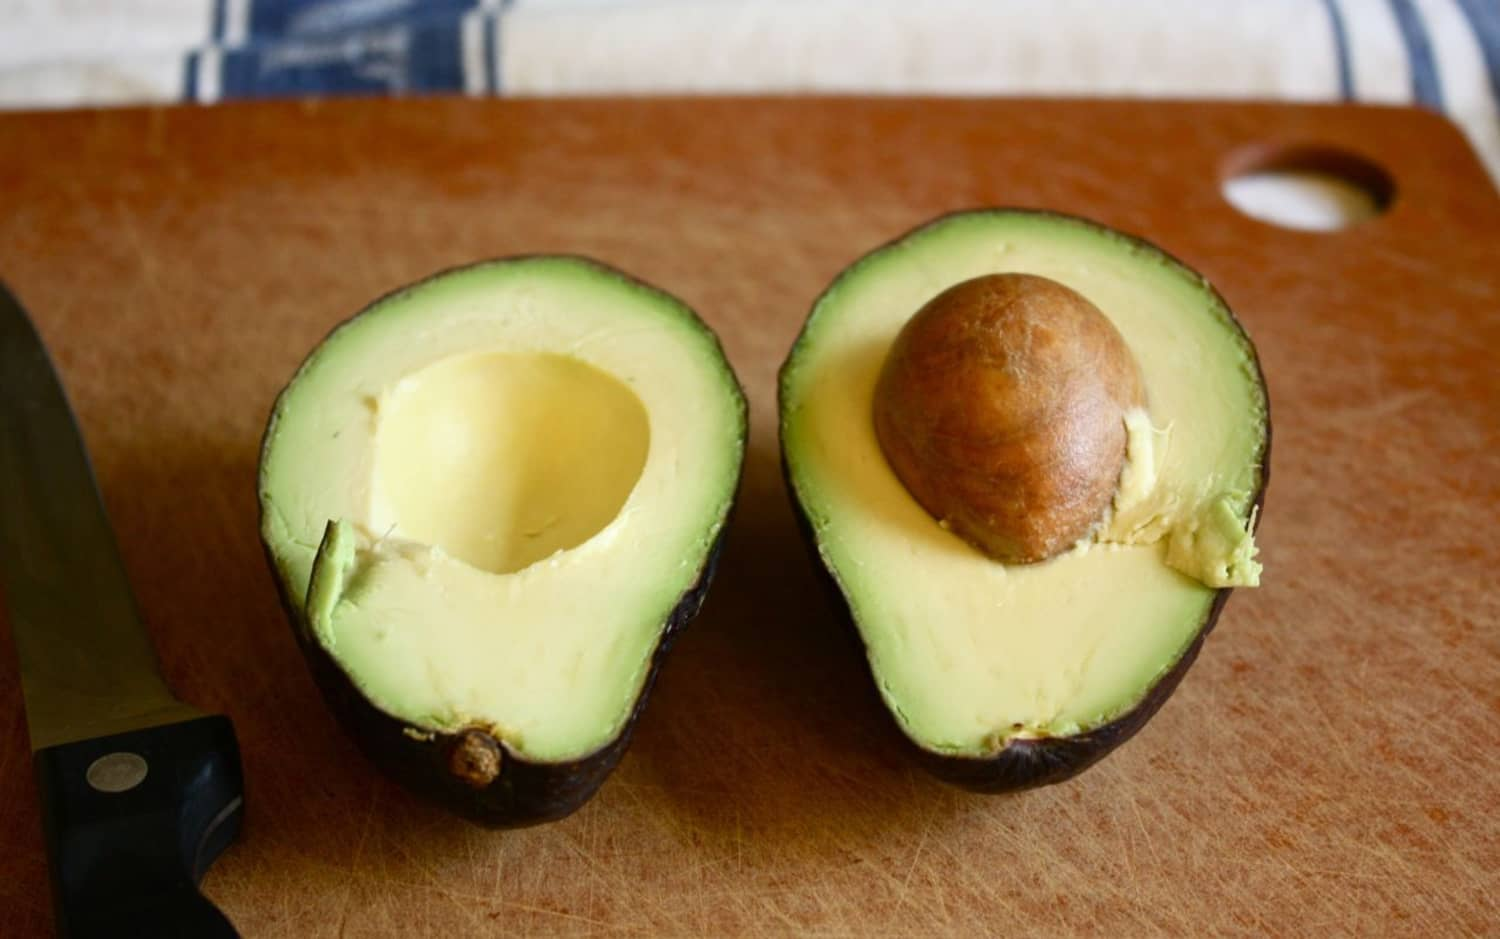 This $8 Amazon Find Is the Secret To Keeping Cut Avocados Fresh and Green for (Almost) Two Weeks